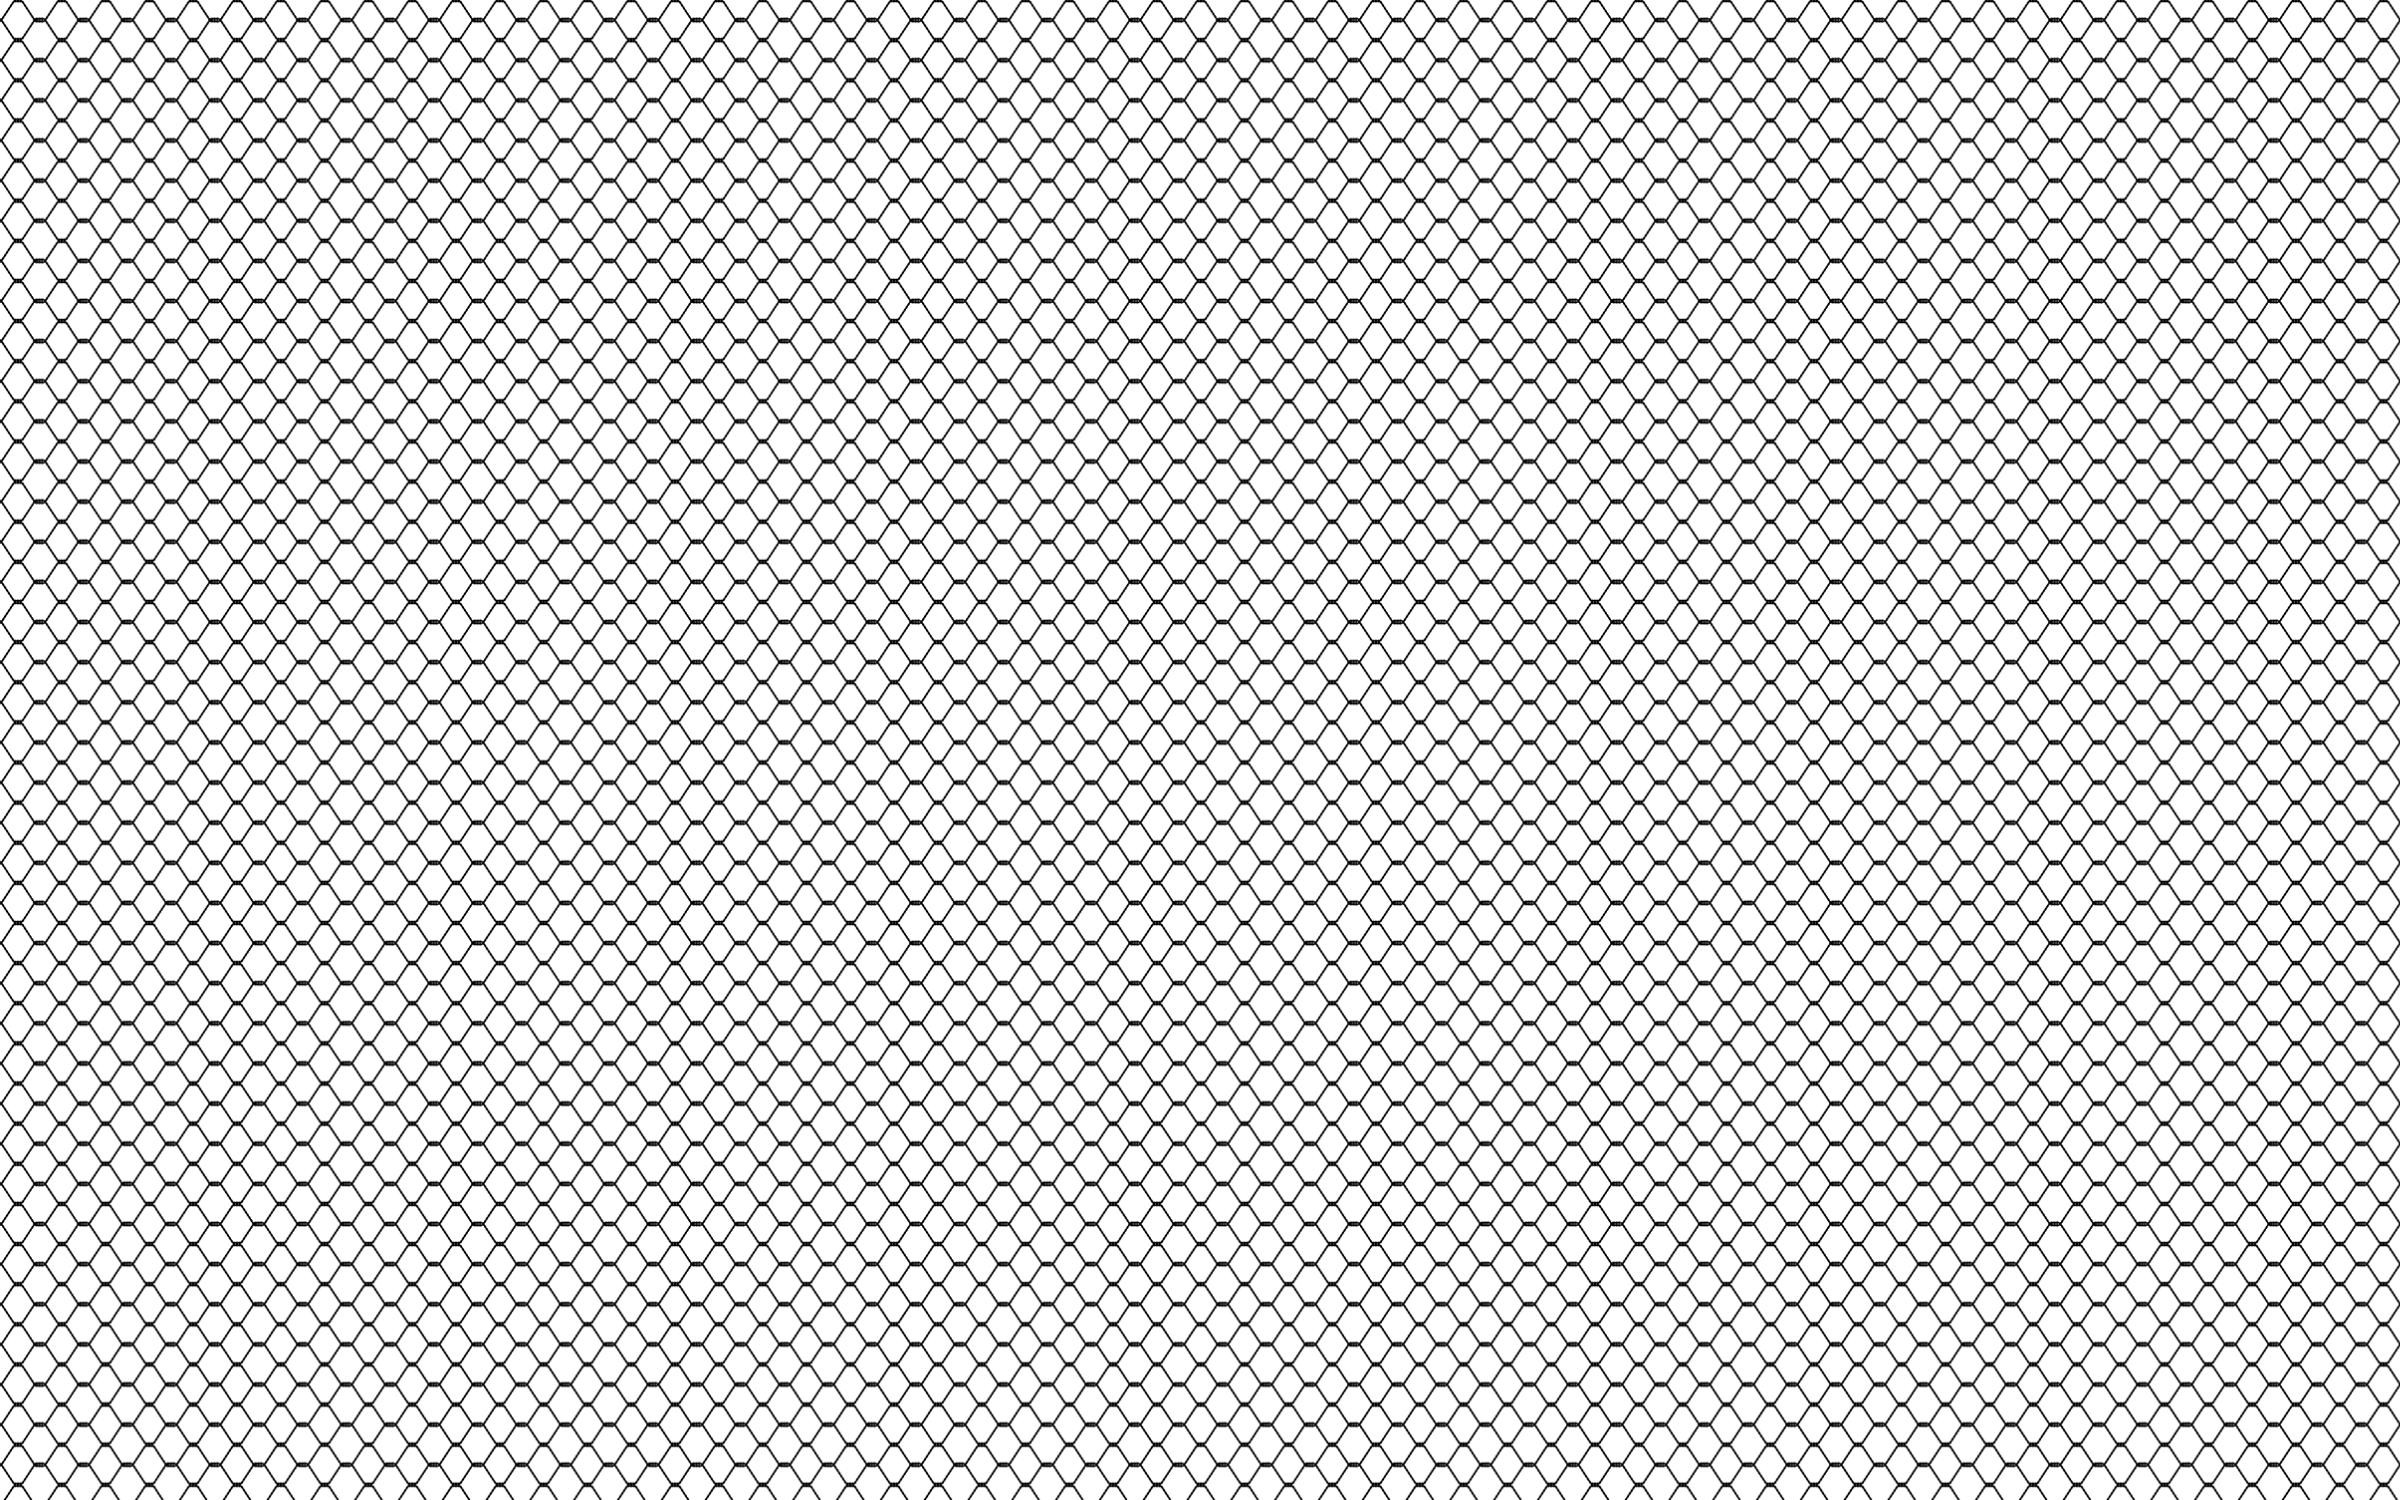 Fishnet Pattern Png - fishnet png - AbeonCliparts | Cliparts & Vectors for free 2019